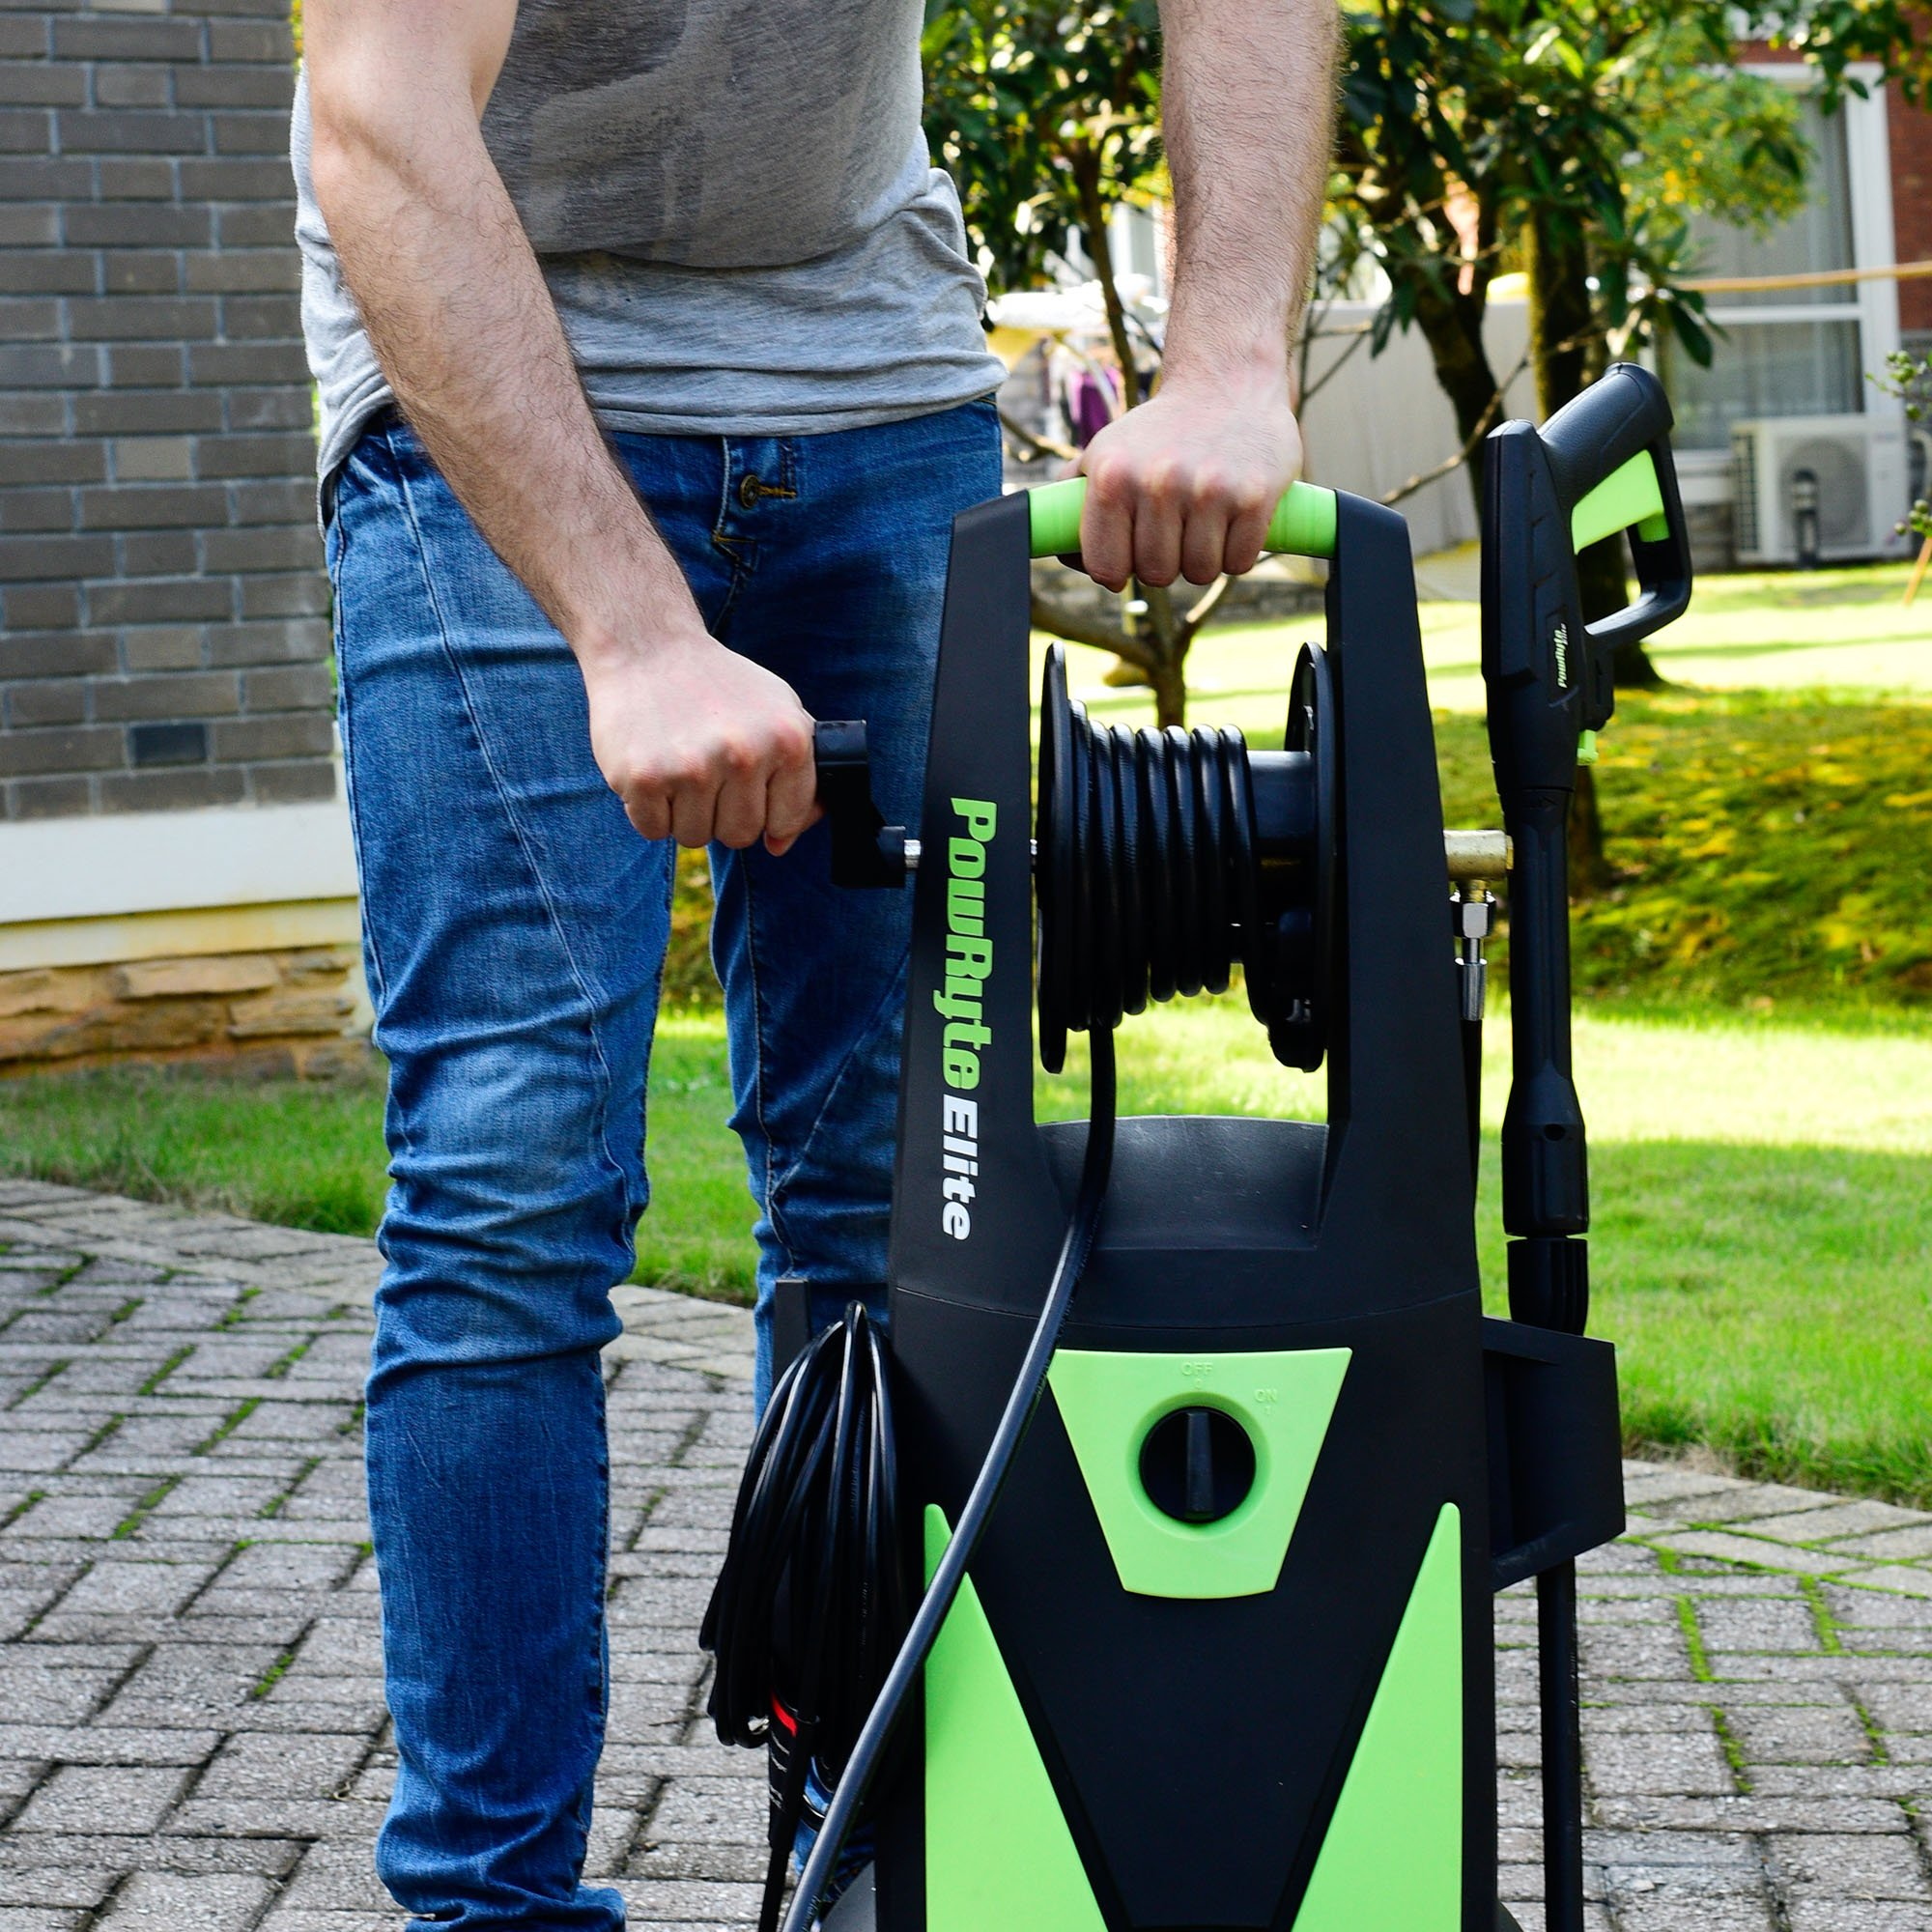 PowRyte Elite Electric Pressure Washer, 2200PSI 2.0GPM Power Washer with Hose Reel, Extra Turbo Nozzle, Induction Motor by PowRyte (Image #7)